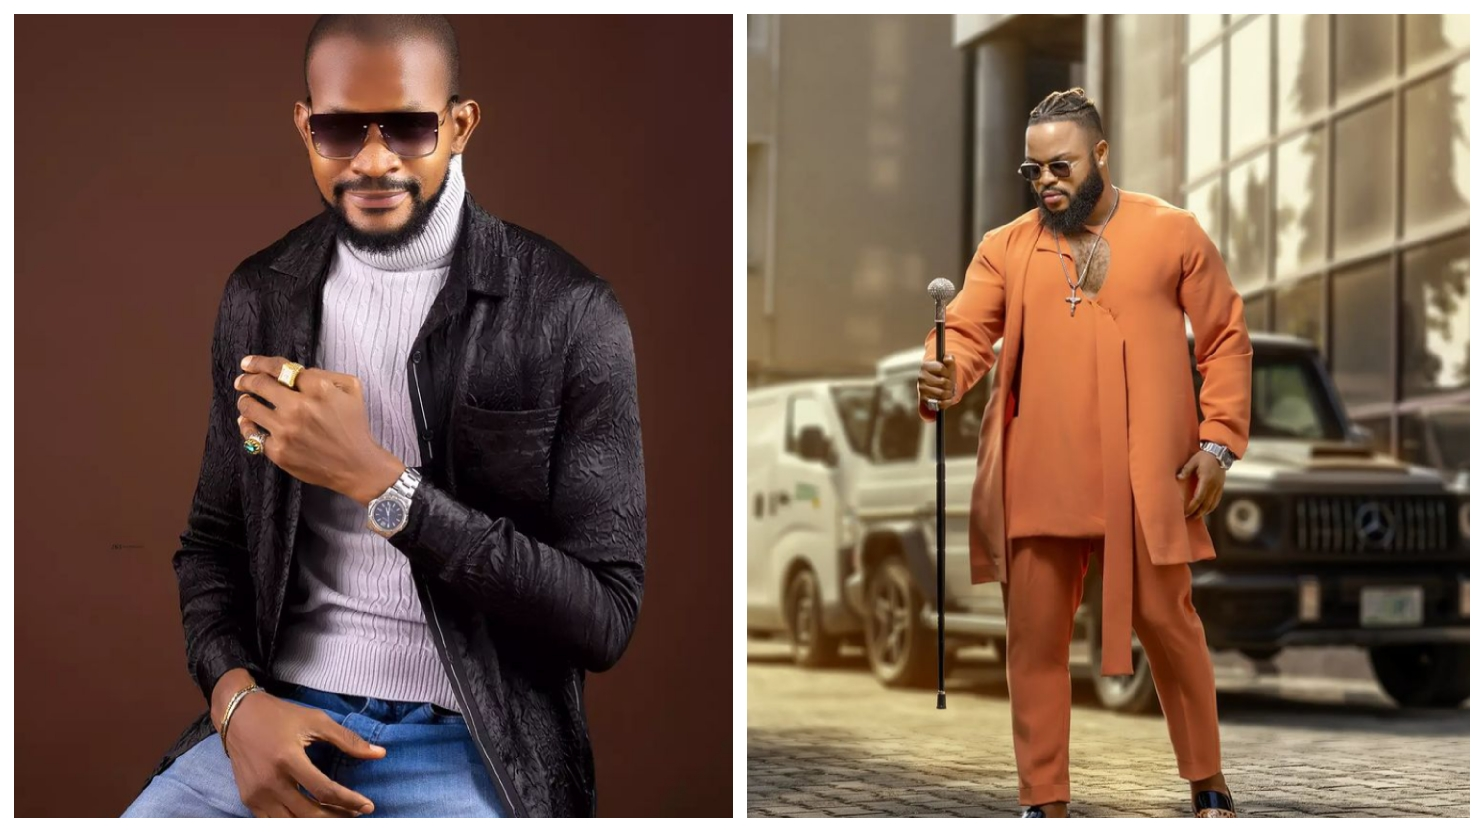 """""""Dear Whitemoney, you are not destined for music, focus your energy in cooking business"""" - Actor Uche Maduagwu says"""